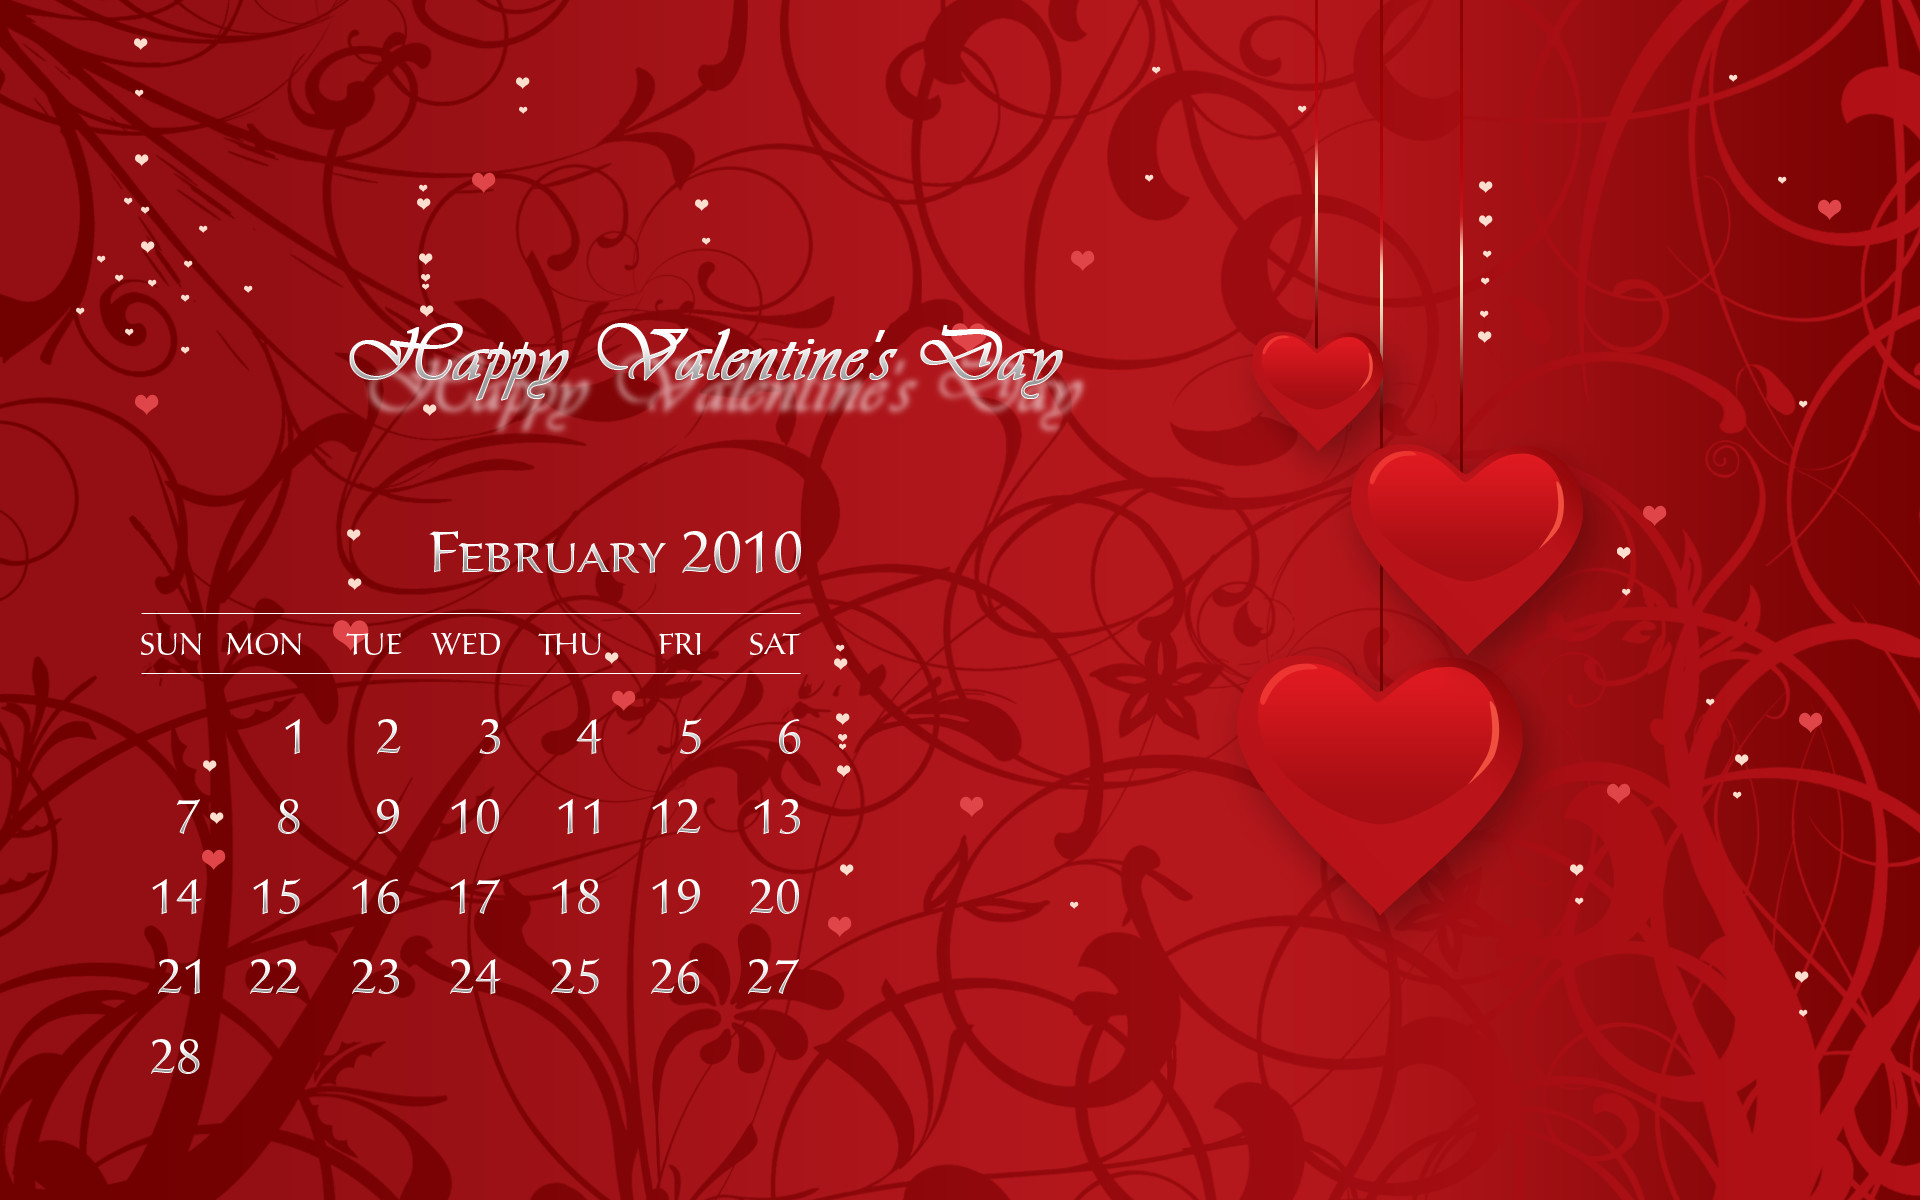 Pictures of Valentine HD, 1920×1200, 12.10.14